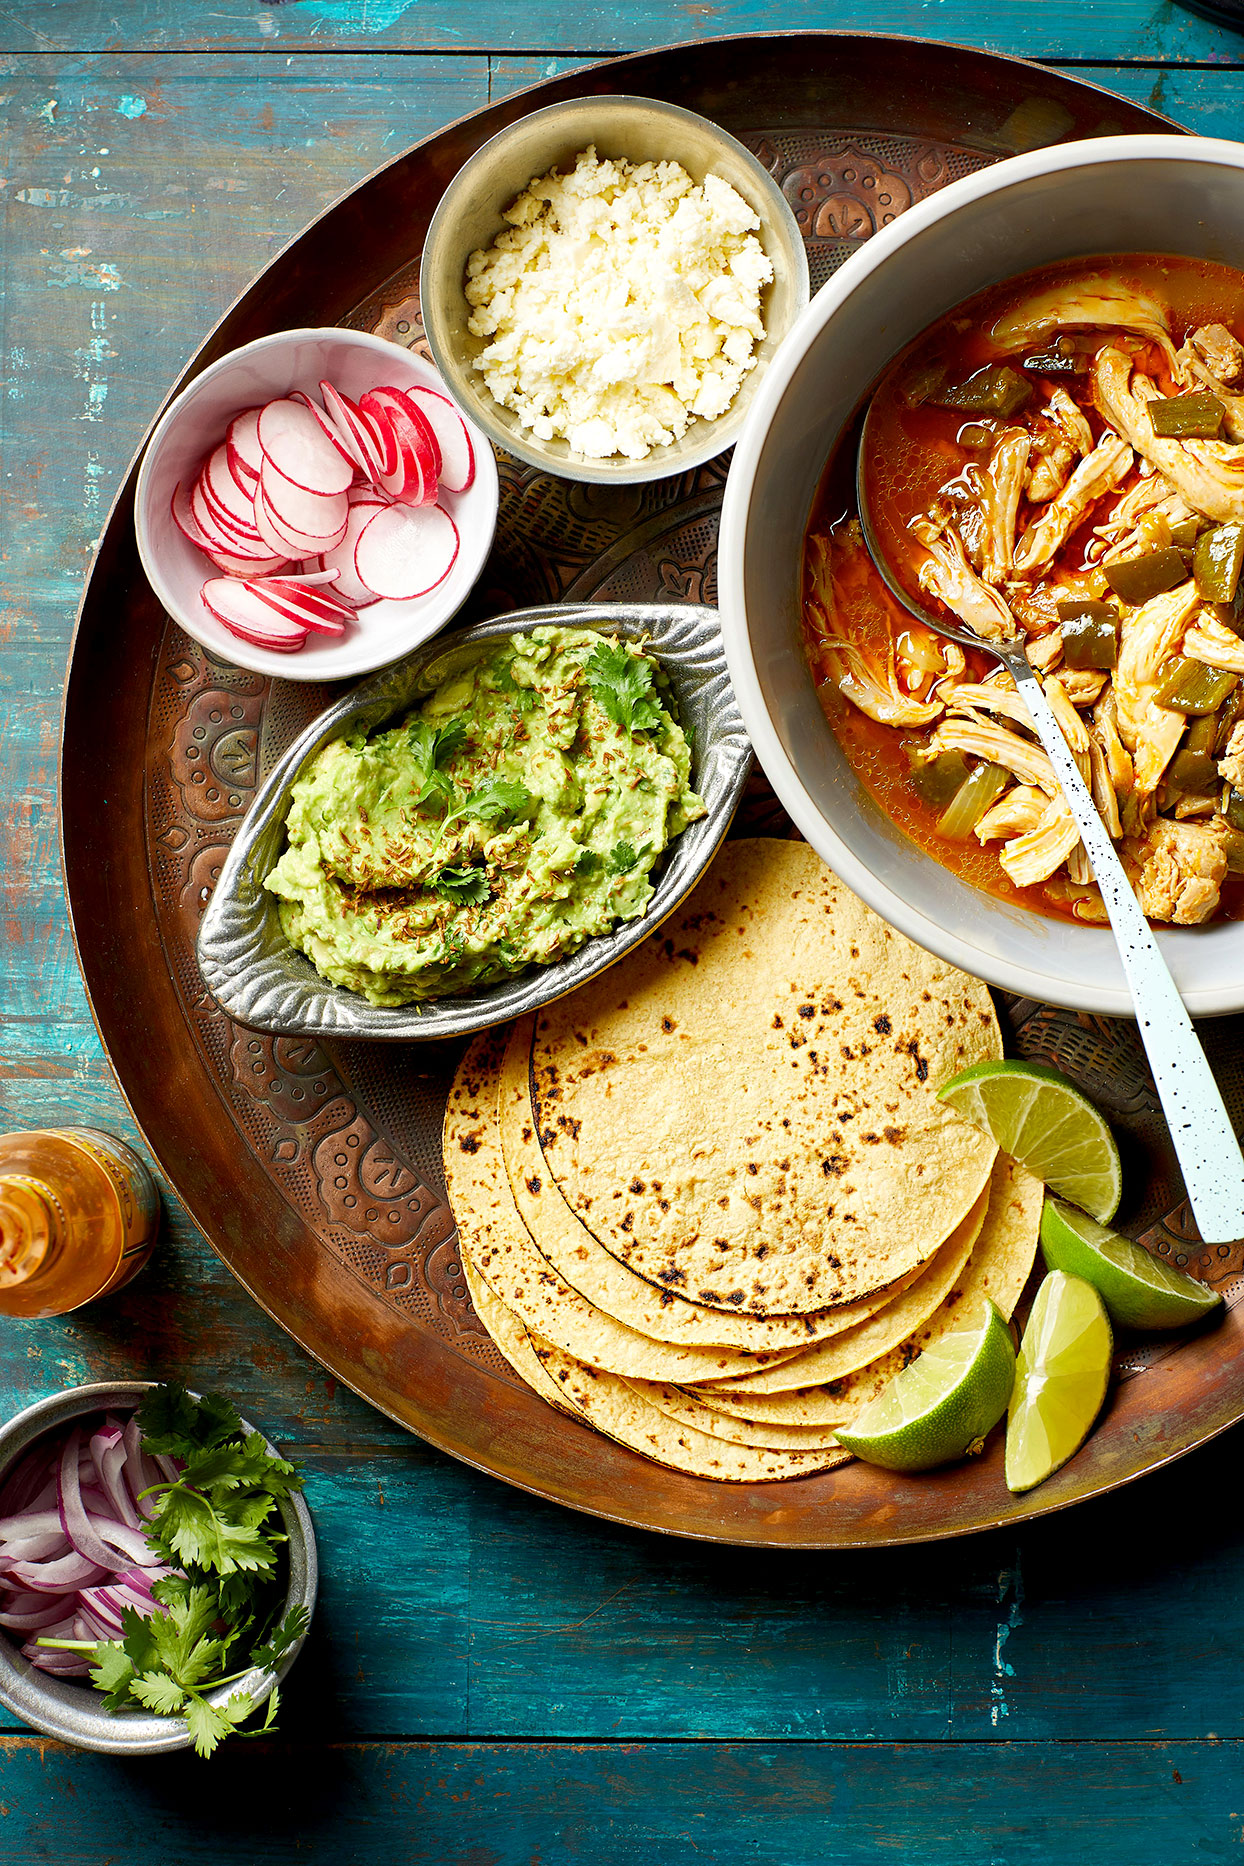 Beer-Braised Chicken Tacos with Toasted Cumin Guacamole in pan with tortillas on the side